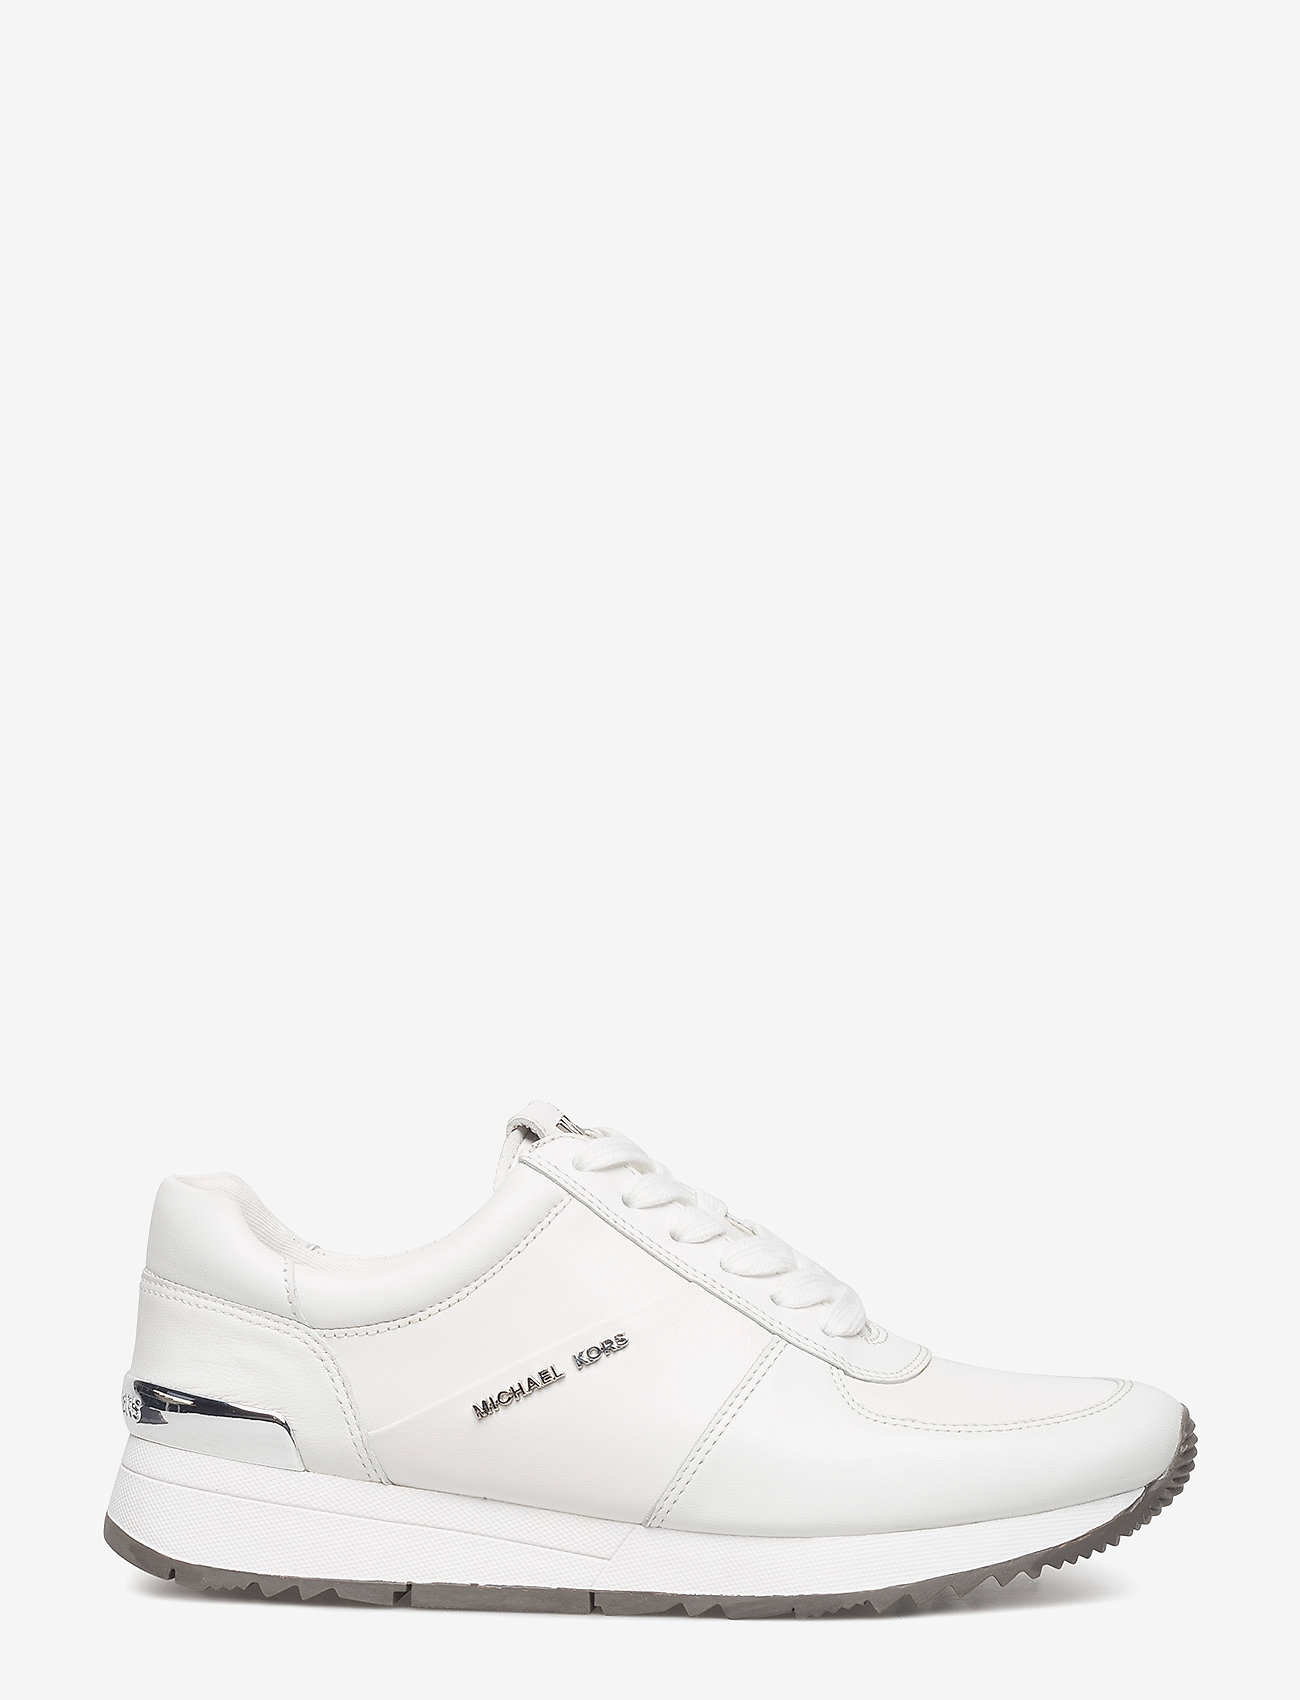 Michael Kors - ALLIE TRAINER - lage sneakers - optic white - 1